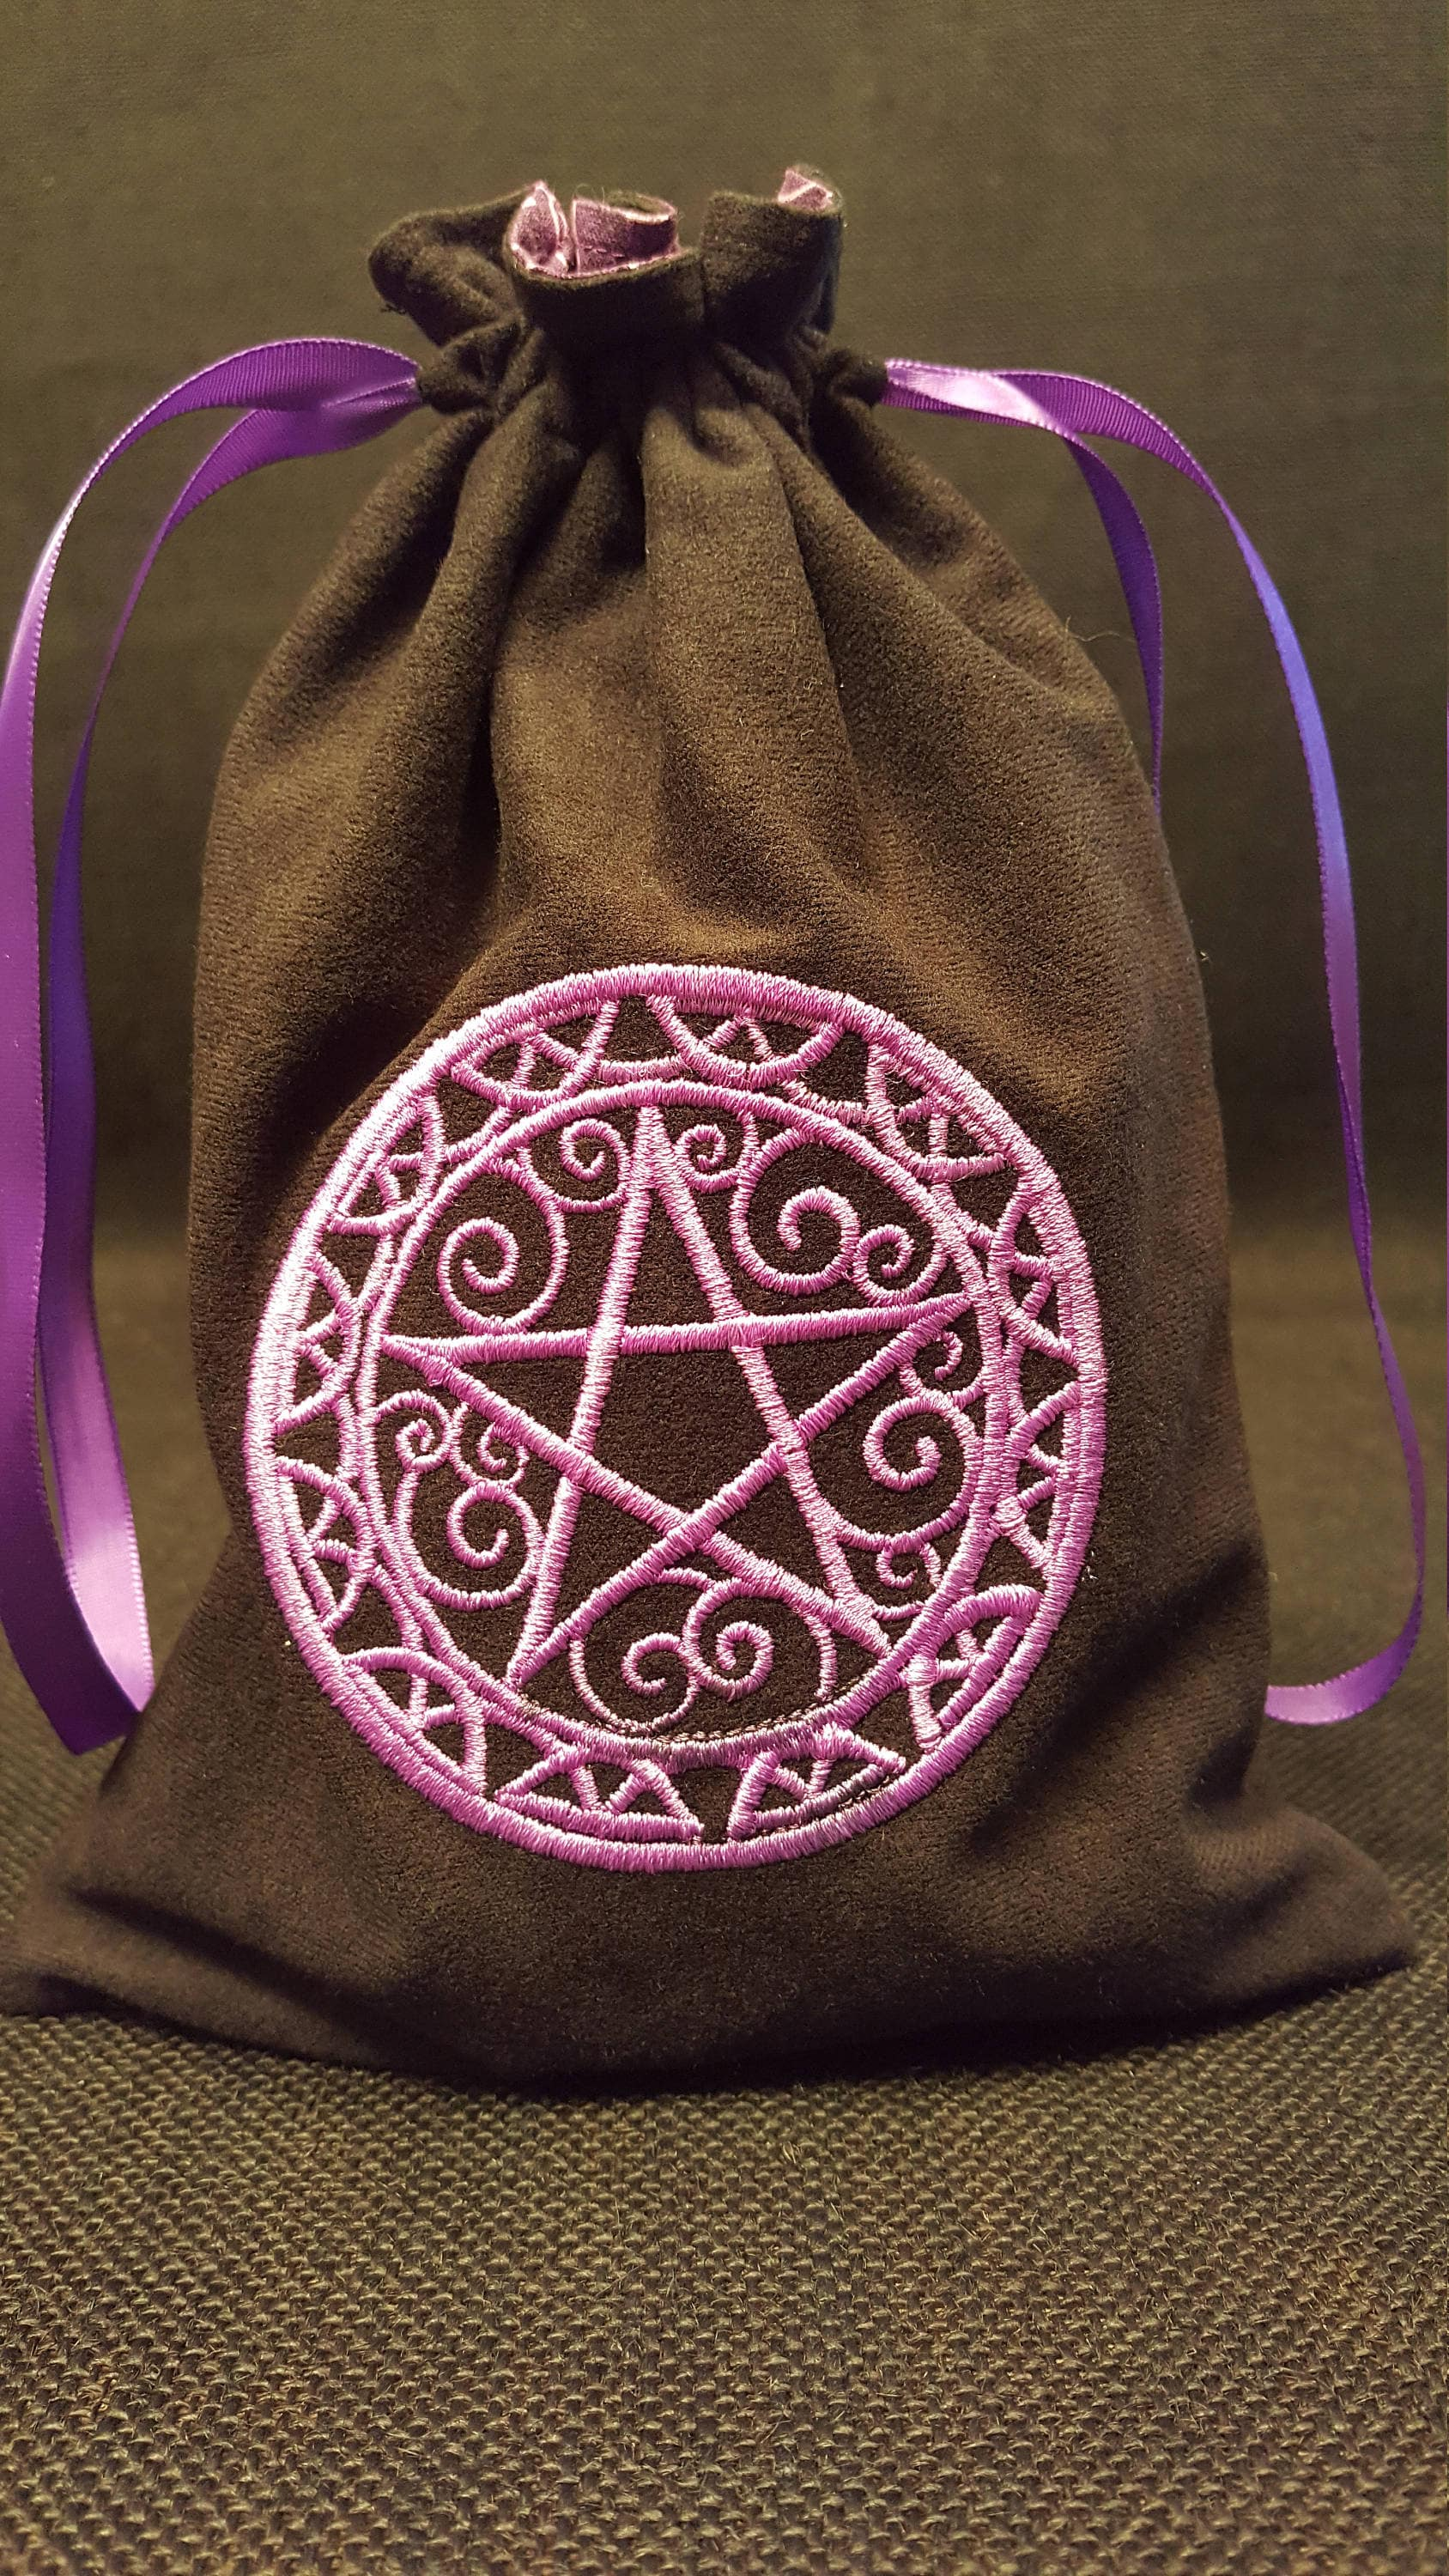 Tarot Bags Tarot Cards Cloths More: Swirly Pentagram In Purple Embroidered Tarot Bag/Pouch